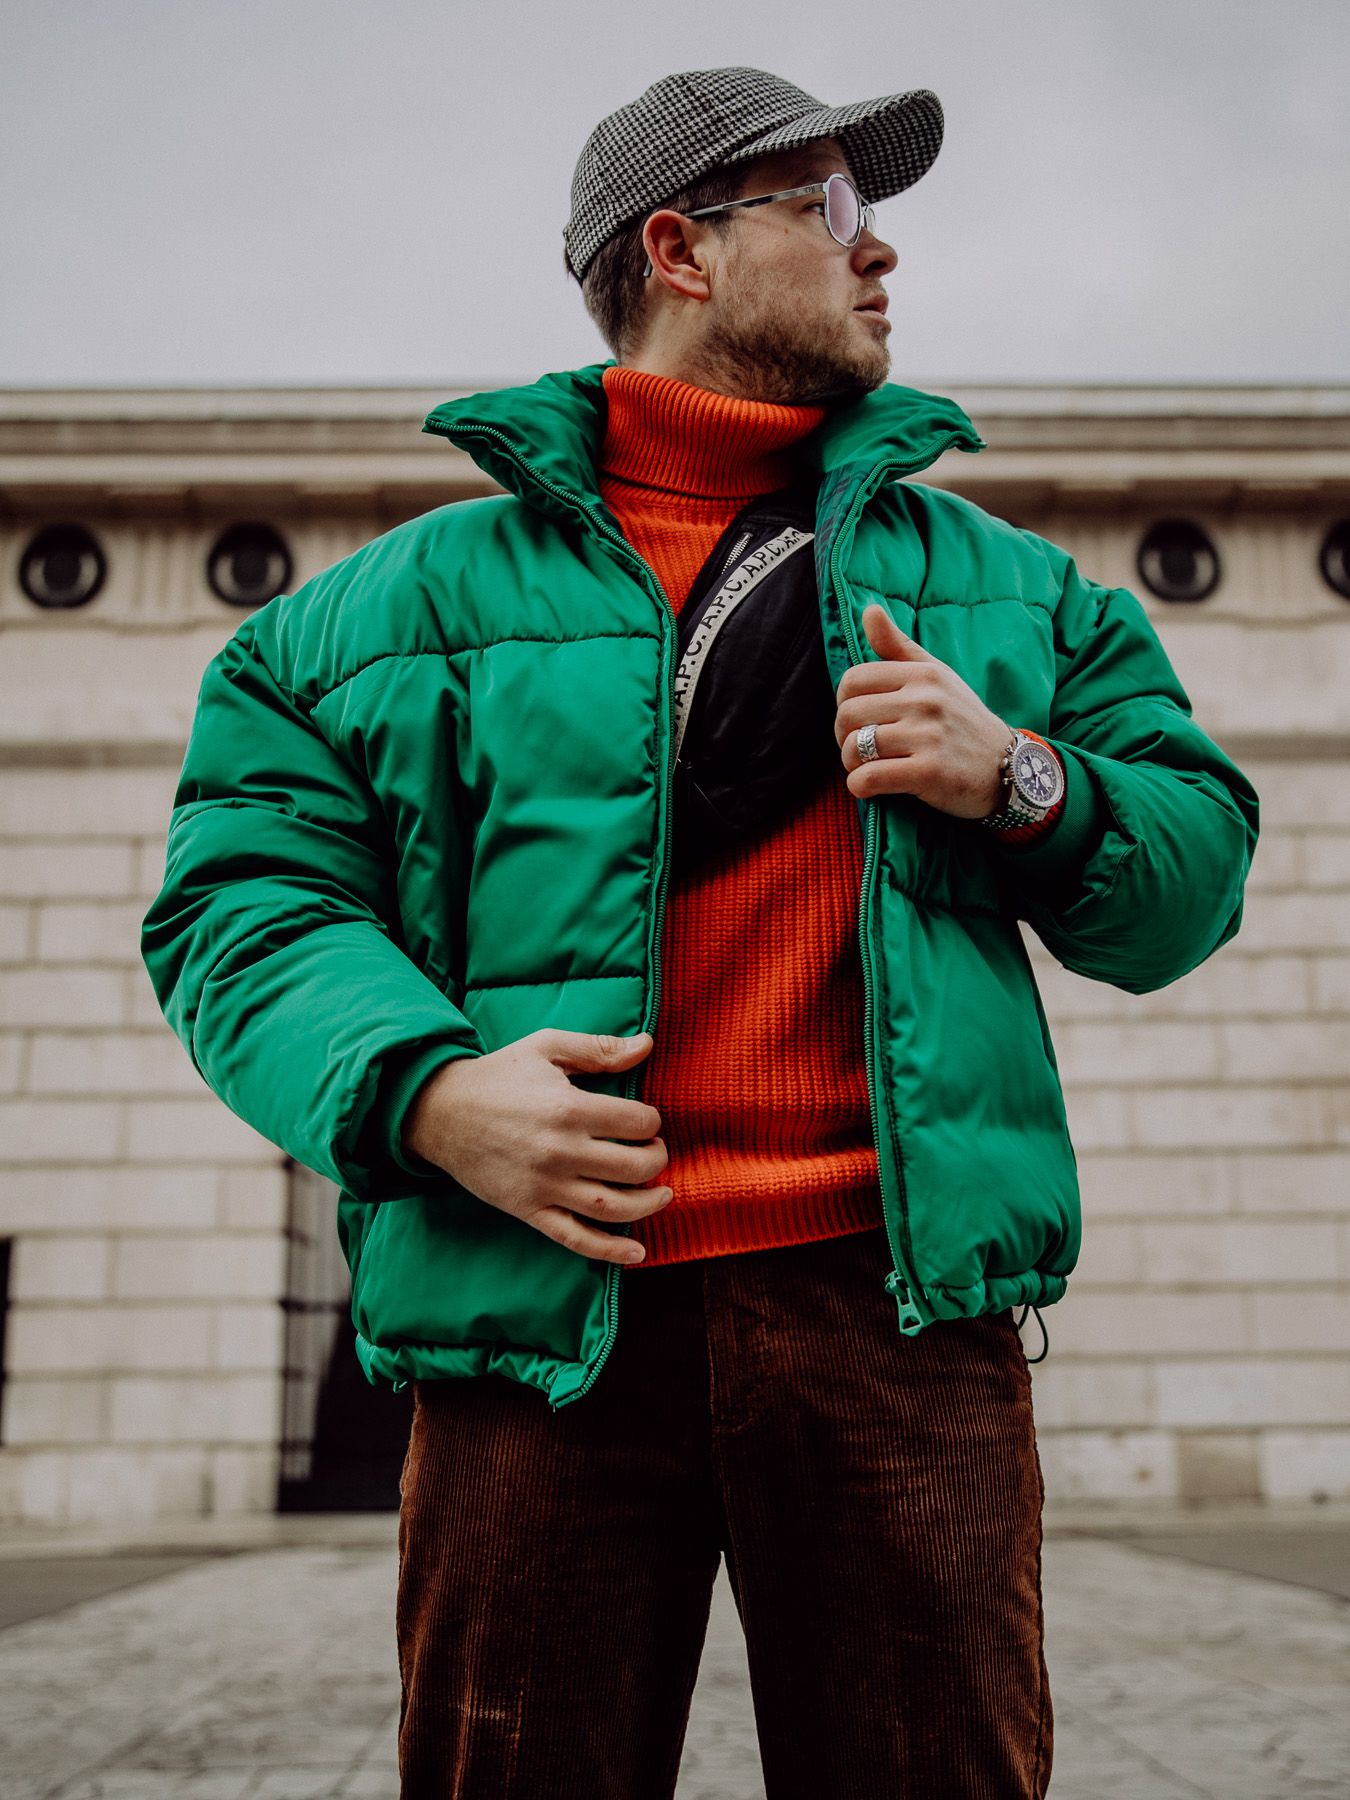 Winter Outfits For Men Oversized Puffer Jacket And Corduroy Pants Meanwhileinawesometown Green Jac Winter Outfits Men Mens Outfits Sweater Jacket Outfits [ 1800 x 1350 Pixel ]